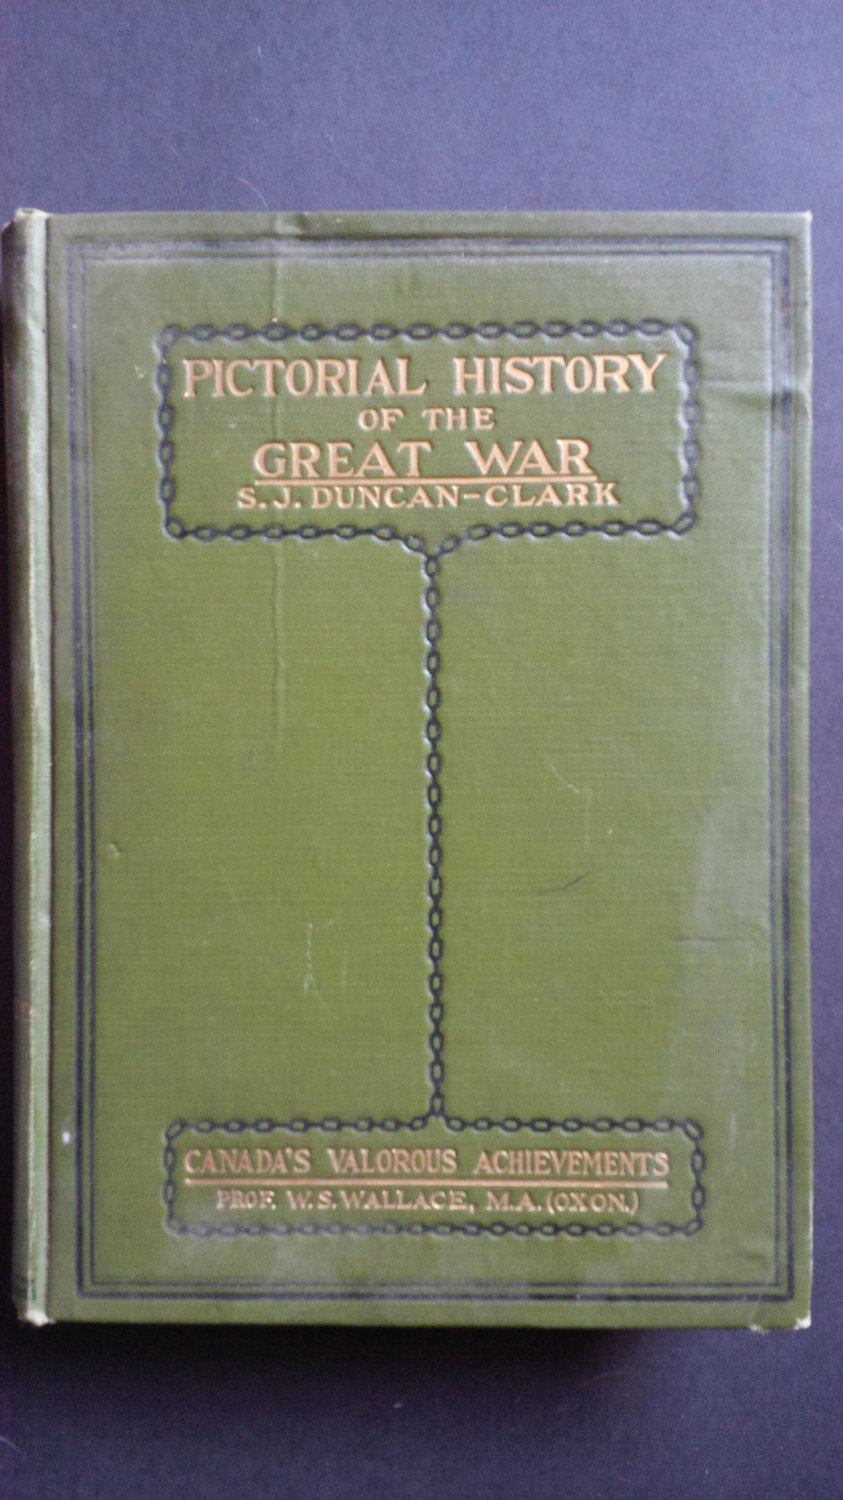 Pictoral History of the Great War: Canada's Valorous Achievements By: S.J. Duncan-Clark (Hardcover)